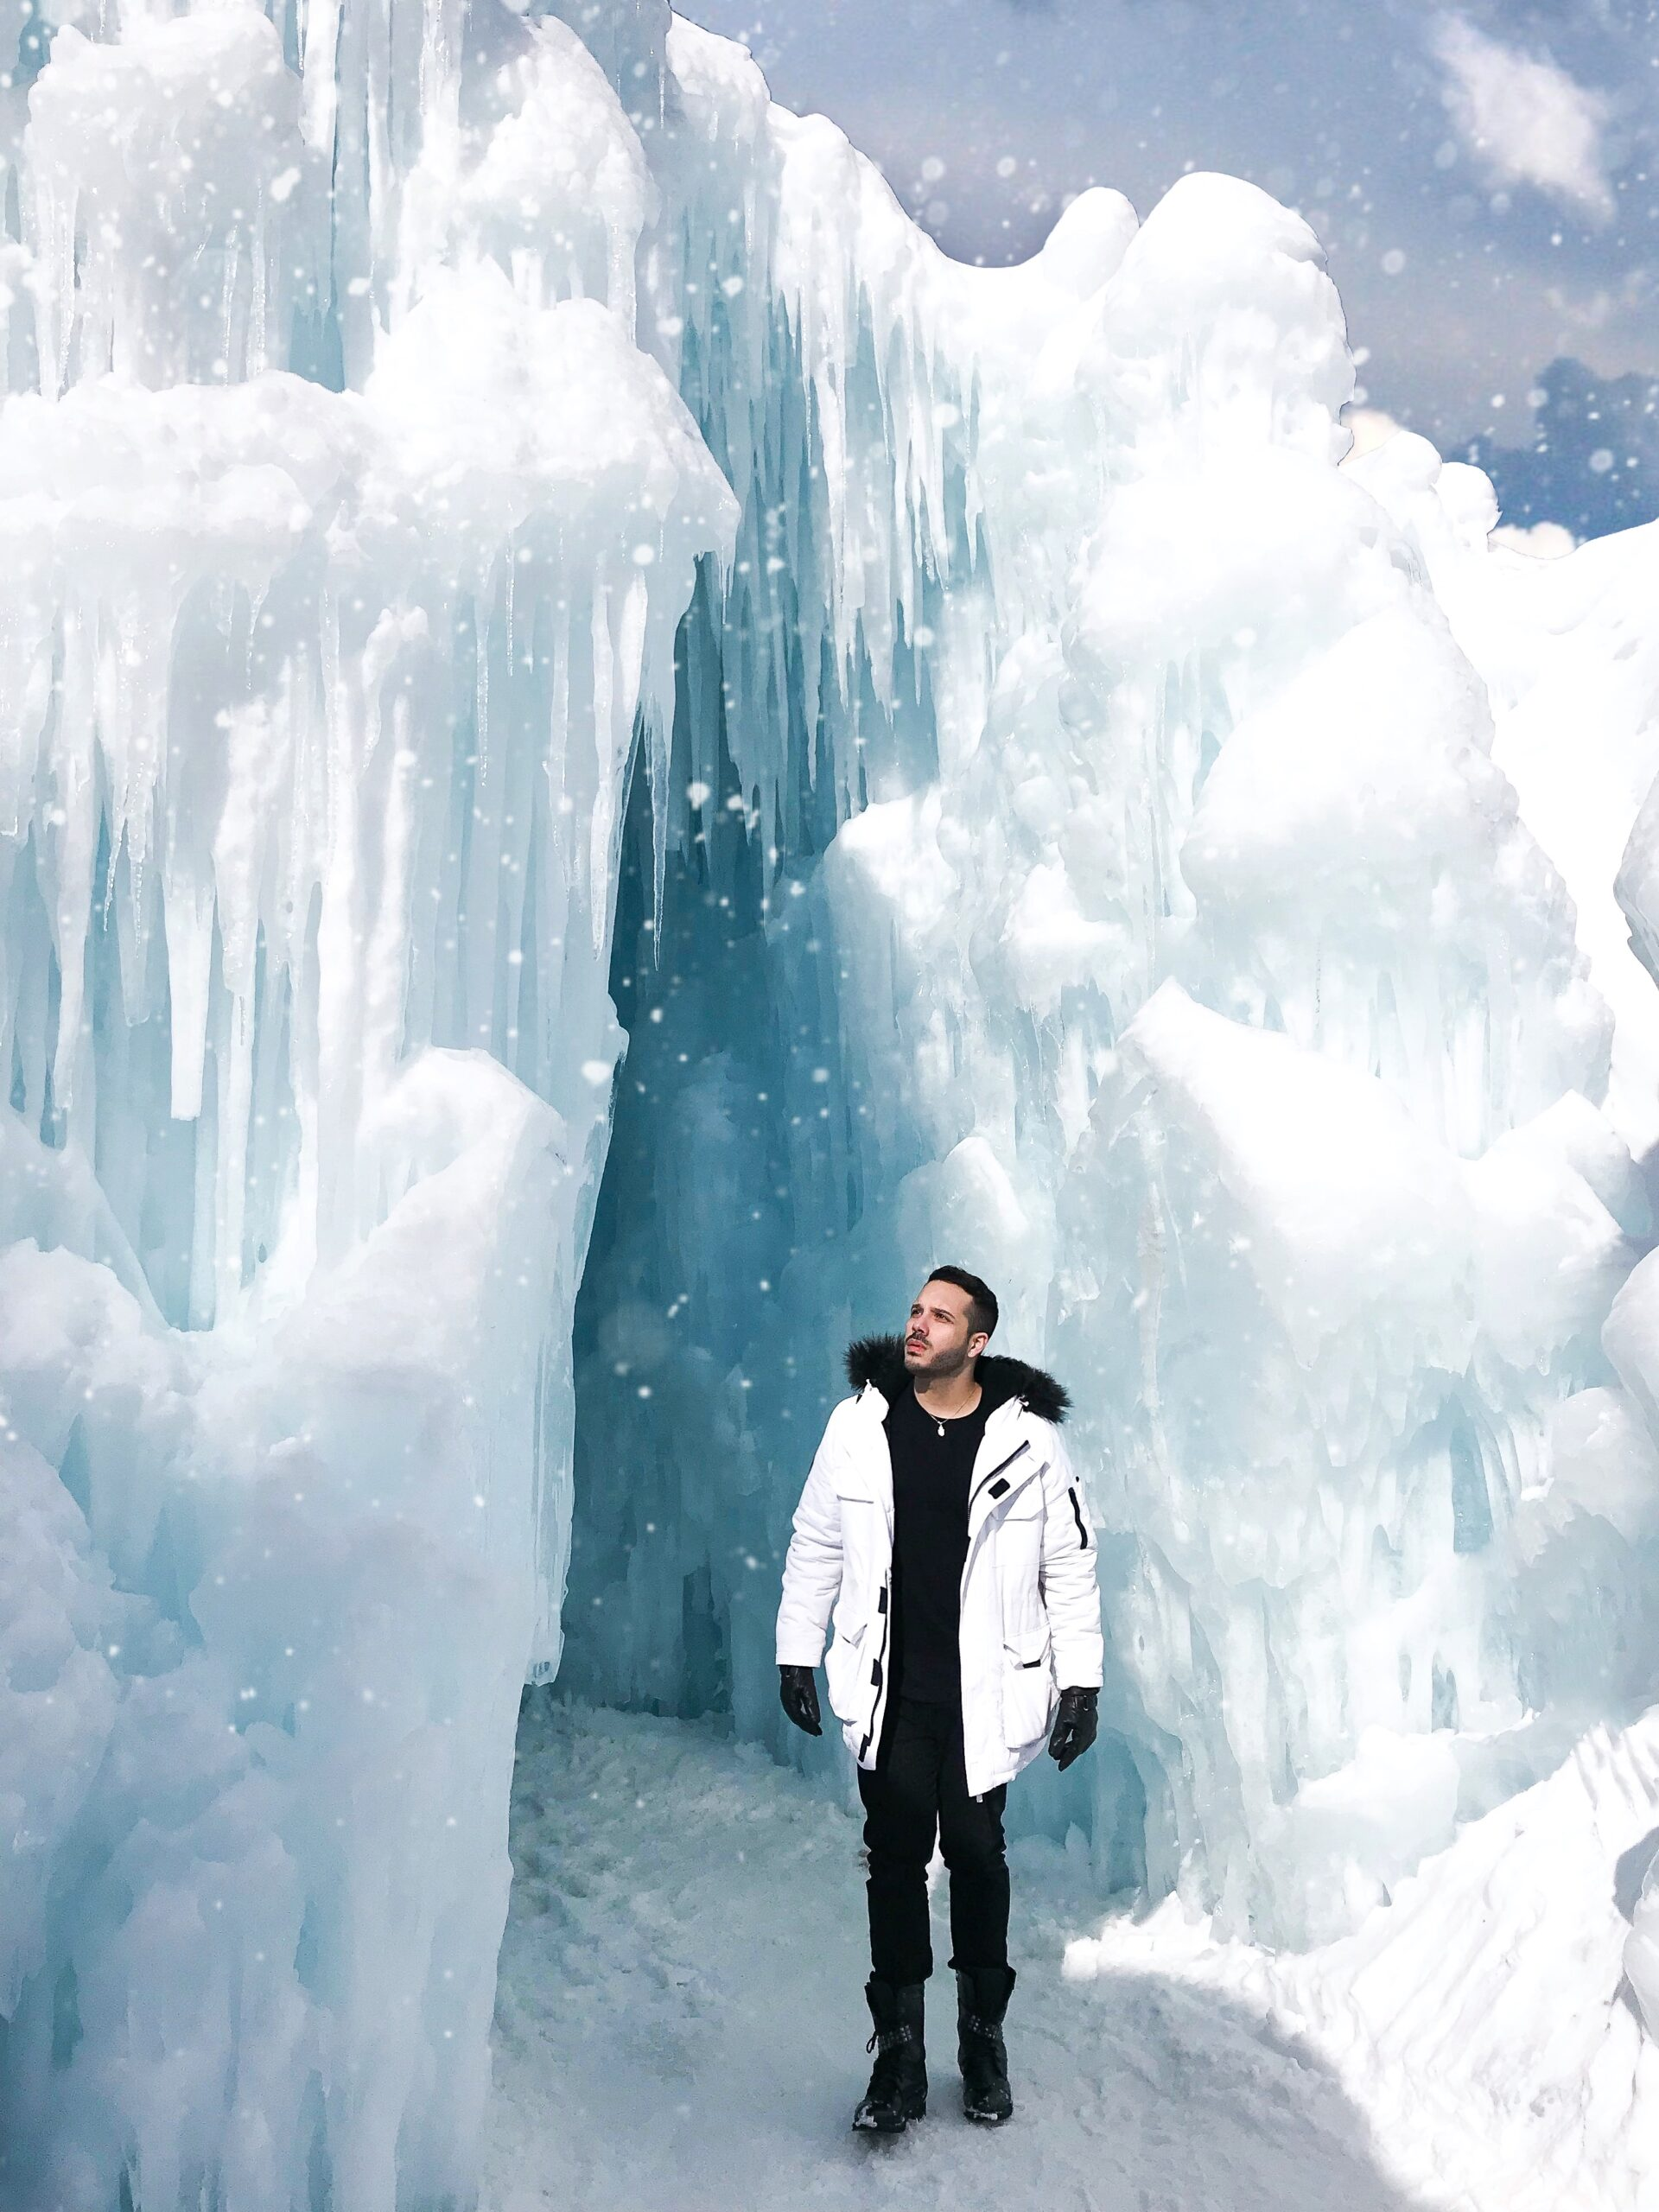 ice castles outfit, ice castles photoshoot, top things to do nh, new england travel guide Disney Frozen Winter Wonderland real life Arendelle fairy tale